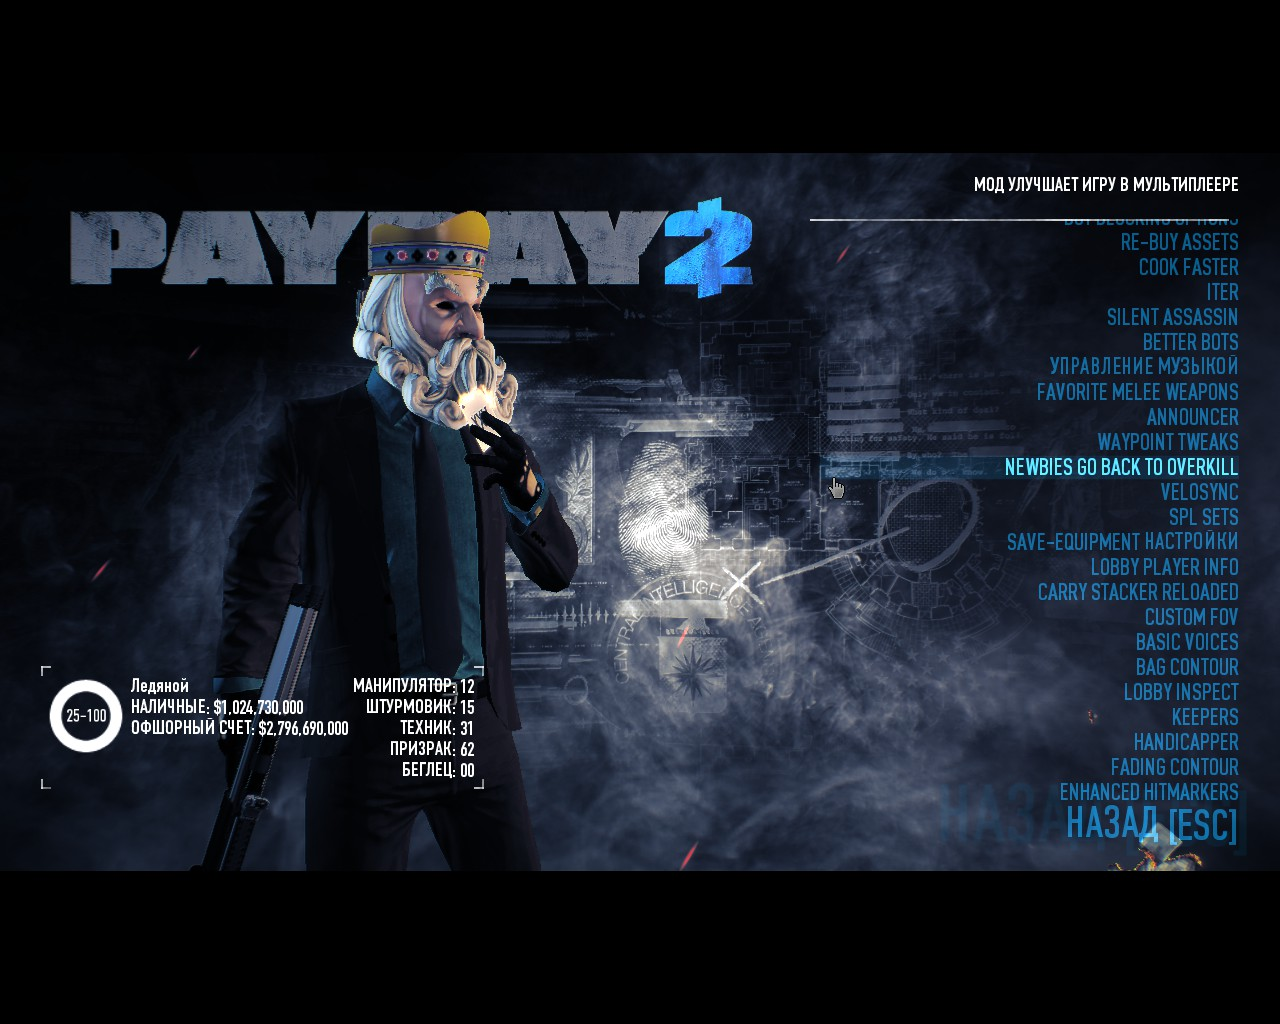 carry stacker payday 2